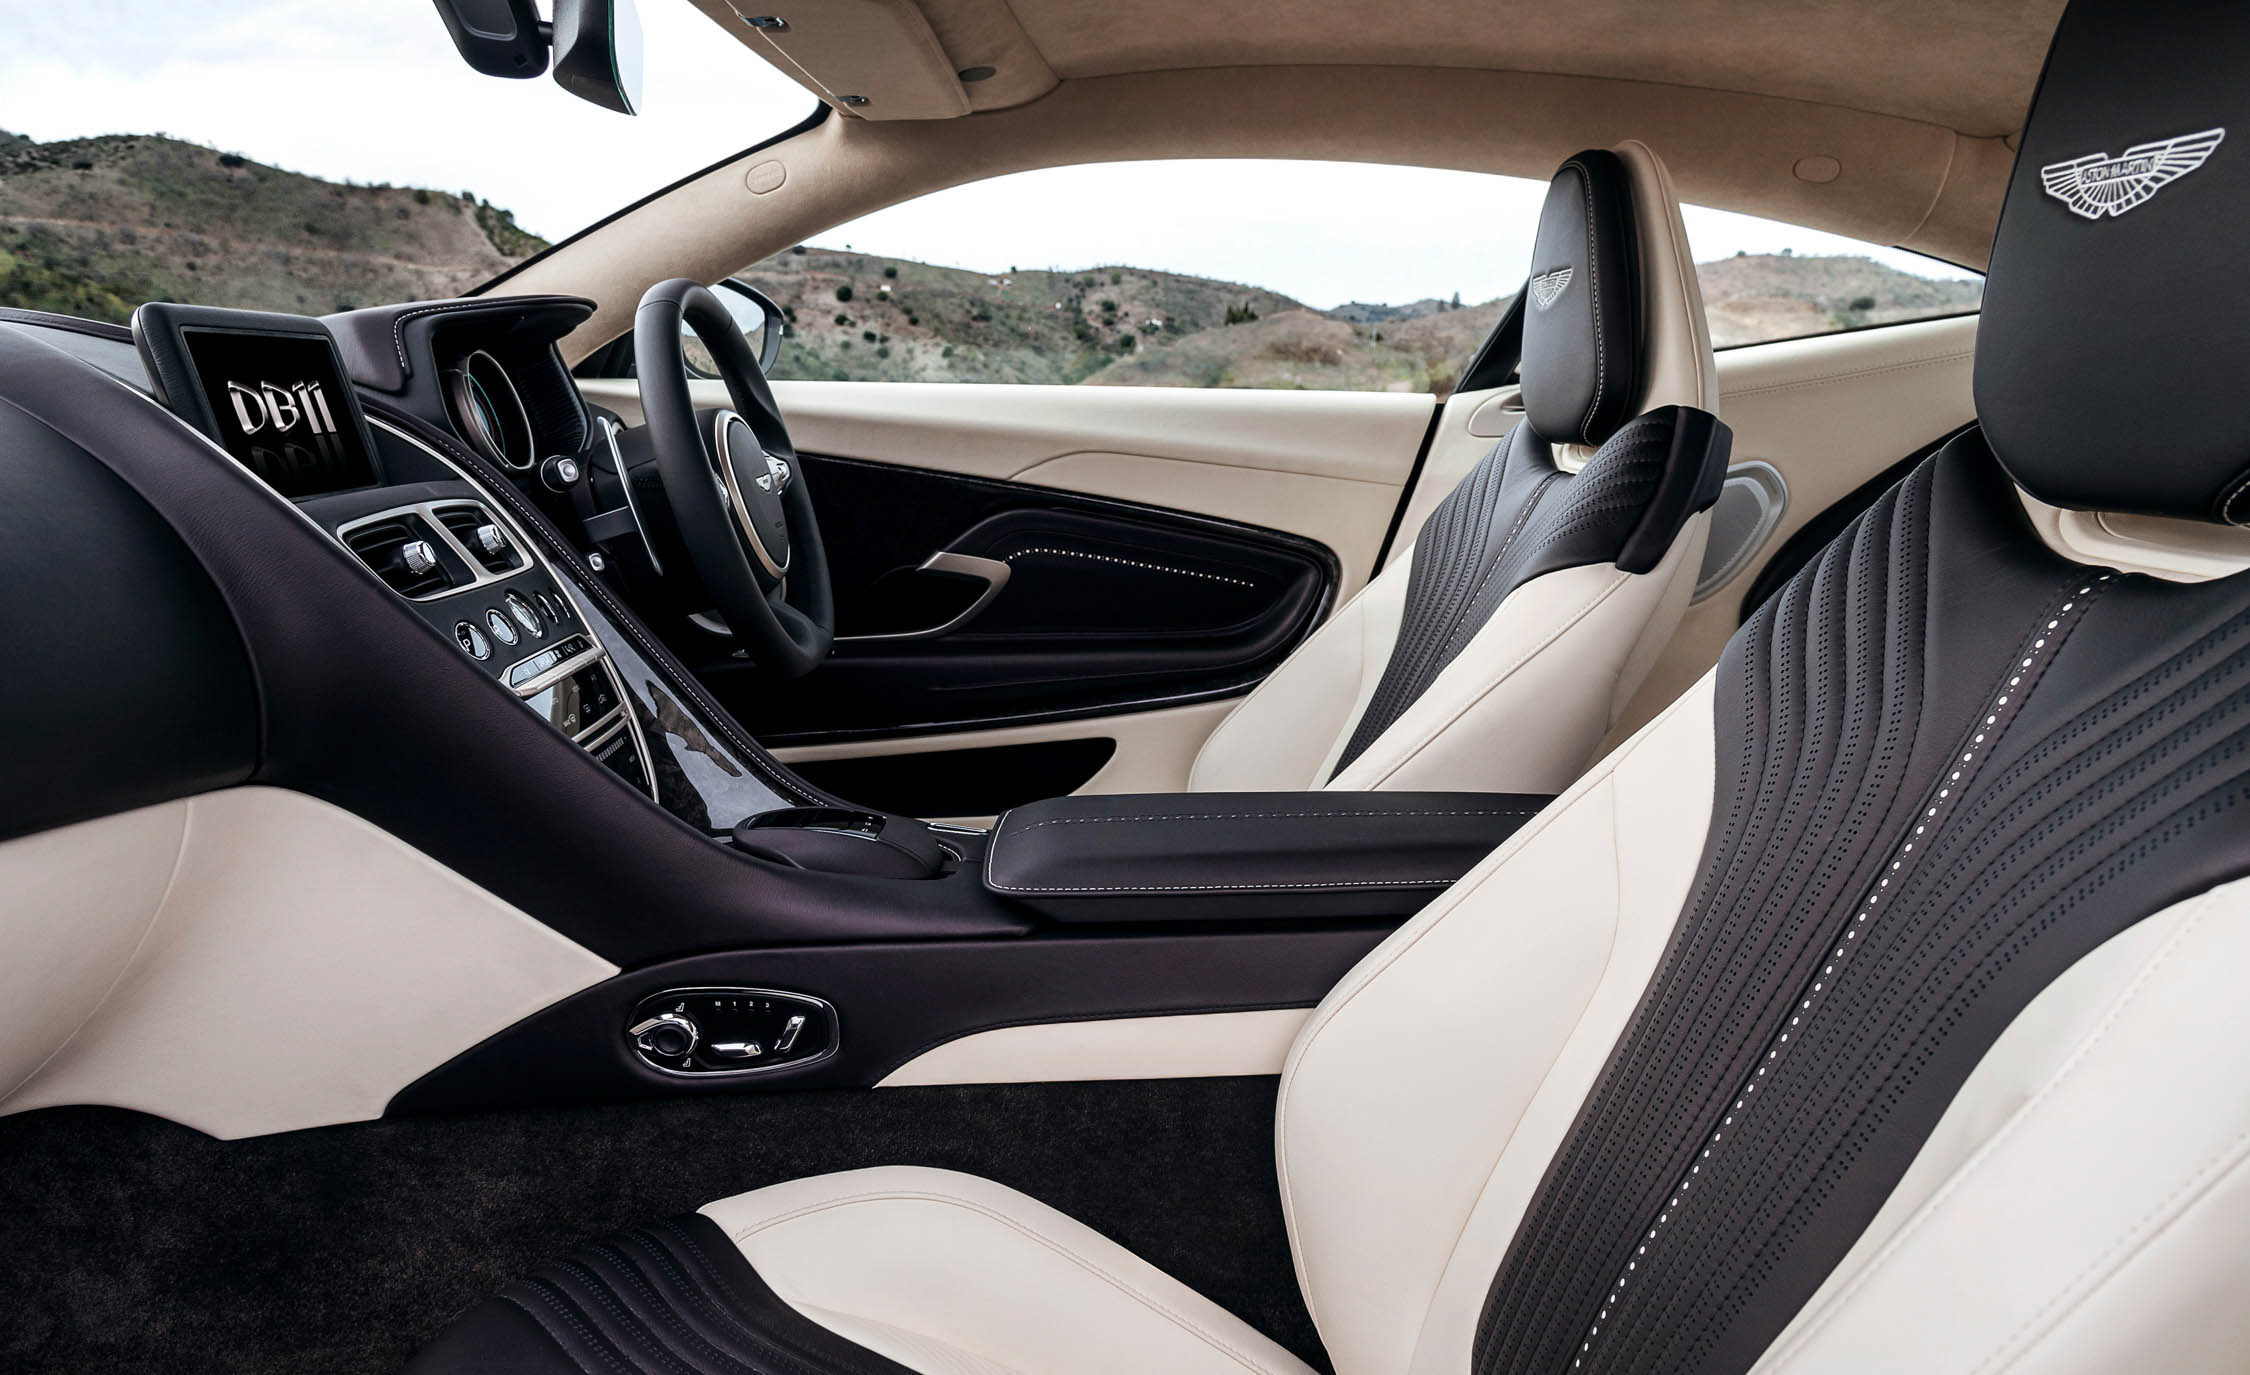 2017 Aston Martin Db11 Interior Seats (Photo 12 of 22)